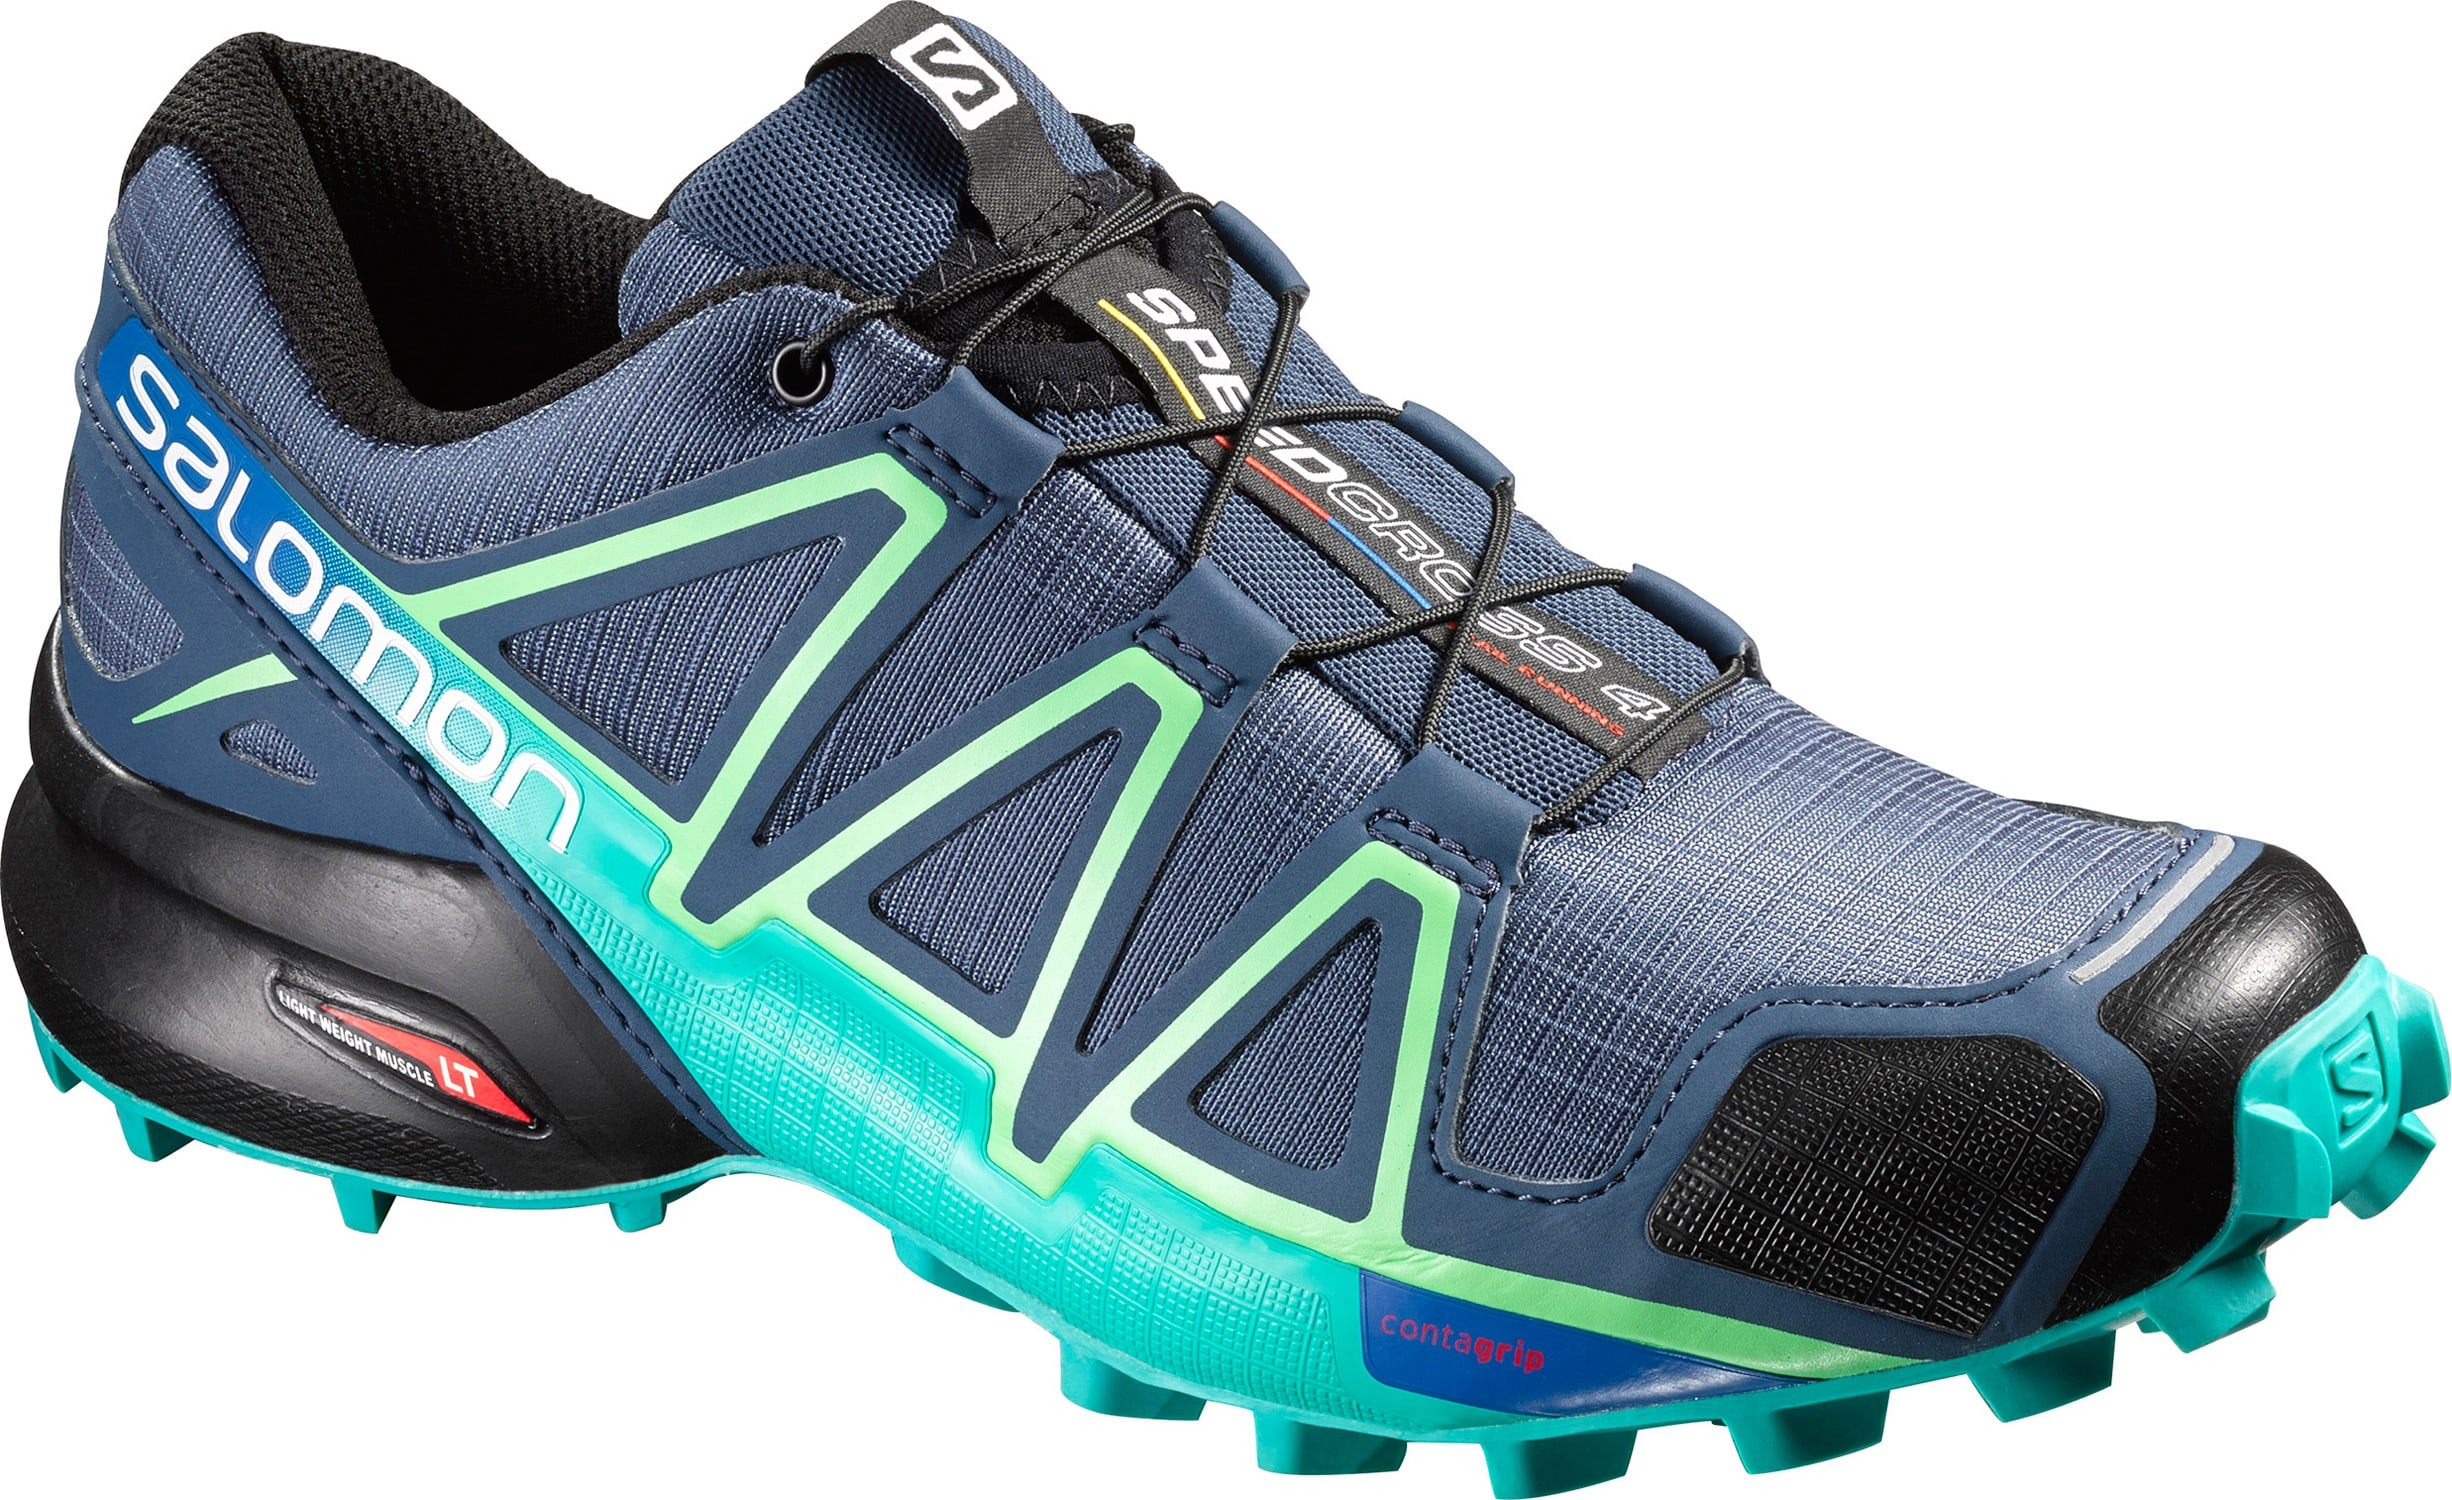 Chaussure Trail Shoes Com